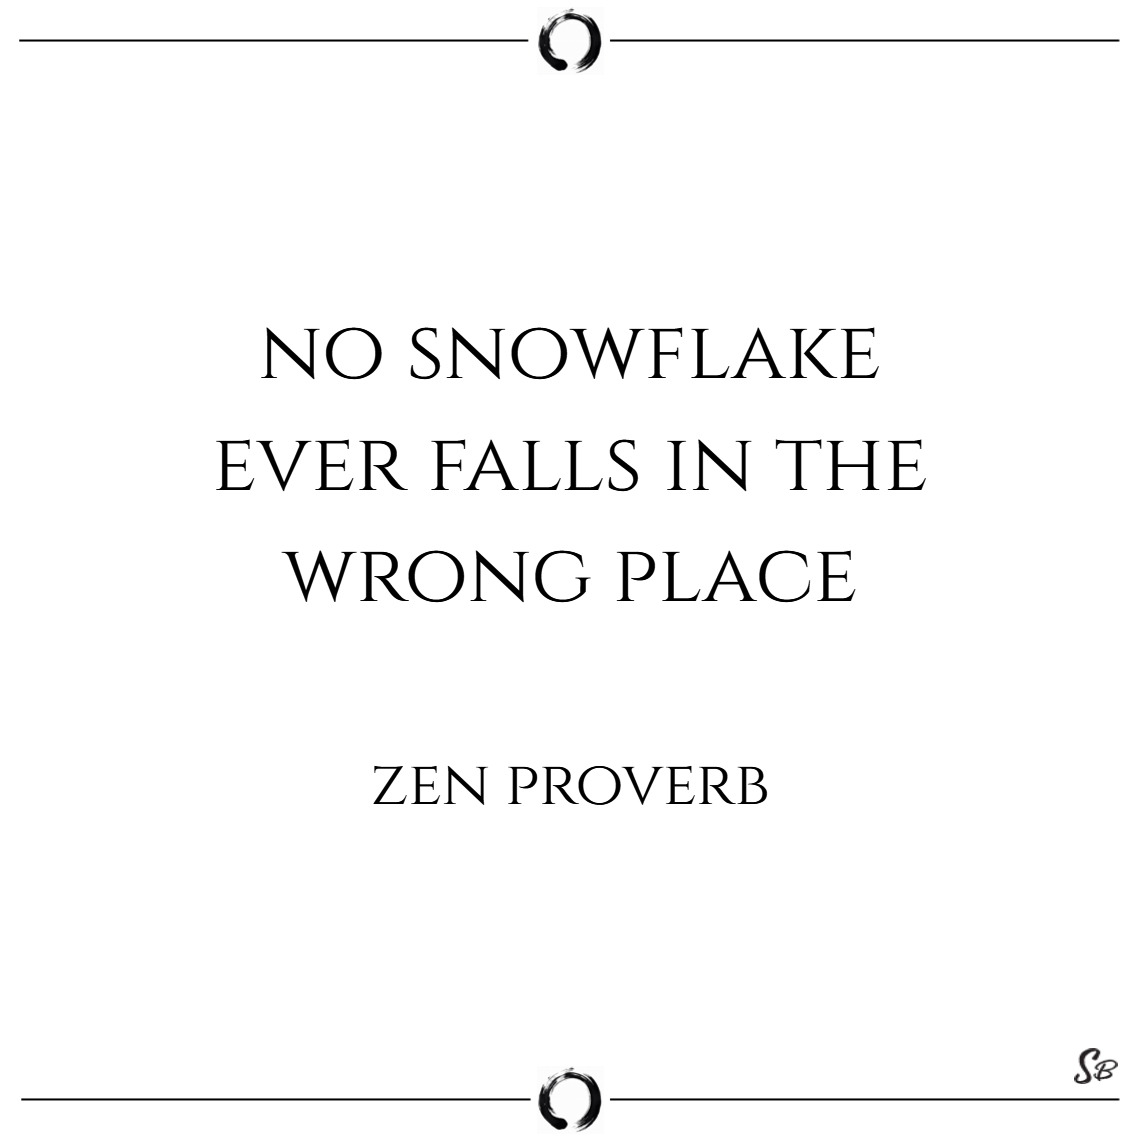 No snowflake ever falls in the wrong place. – zen